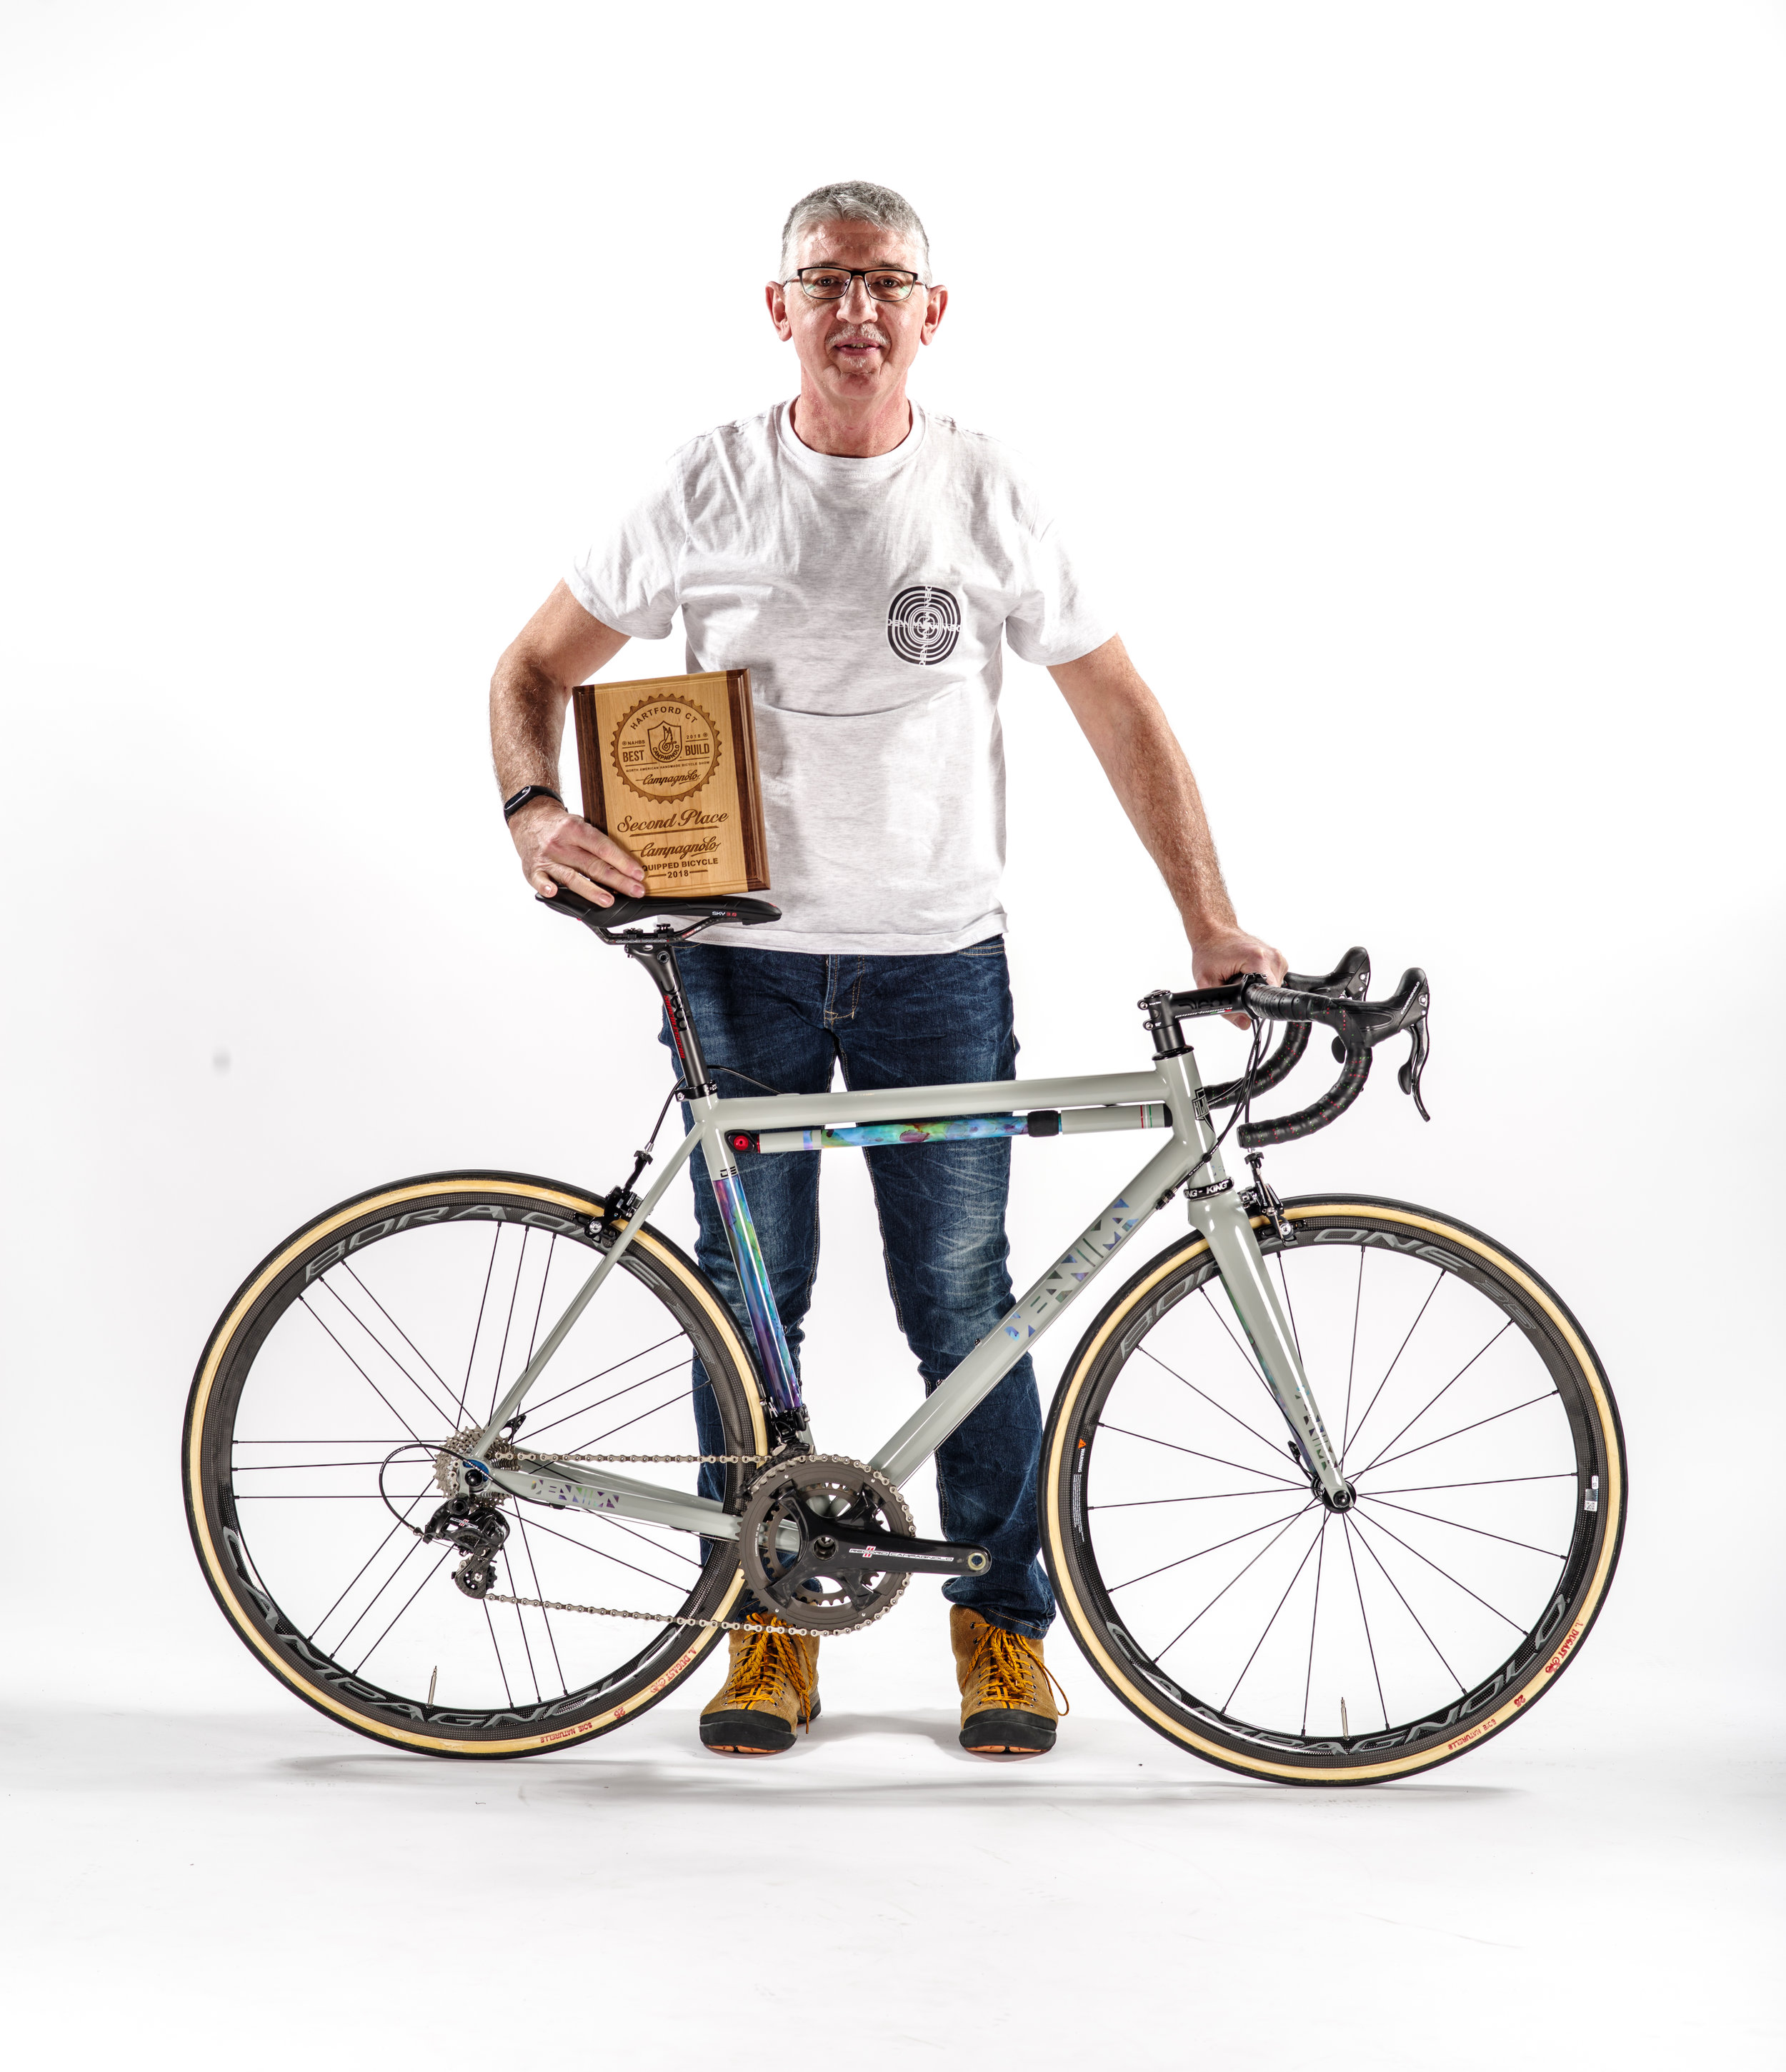 Campagnolo Best Build - Honorable Mention - DeAnima